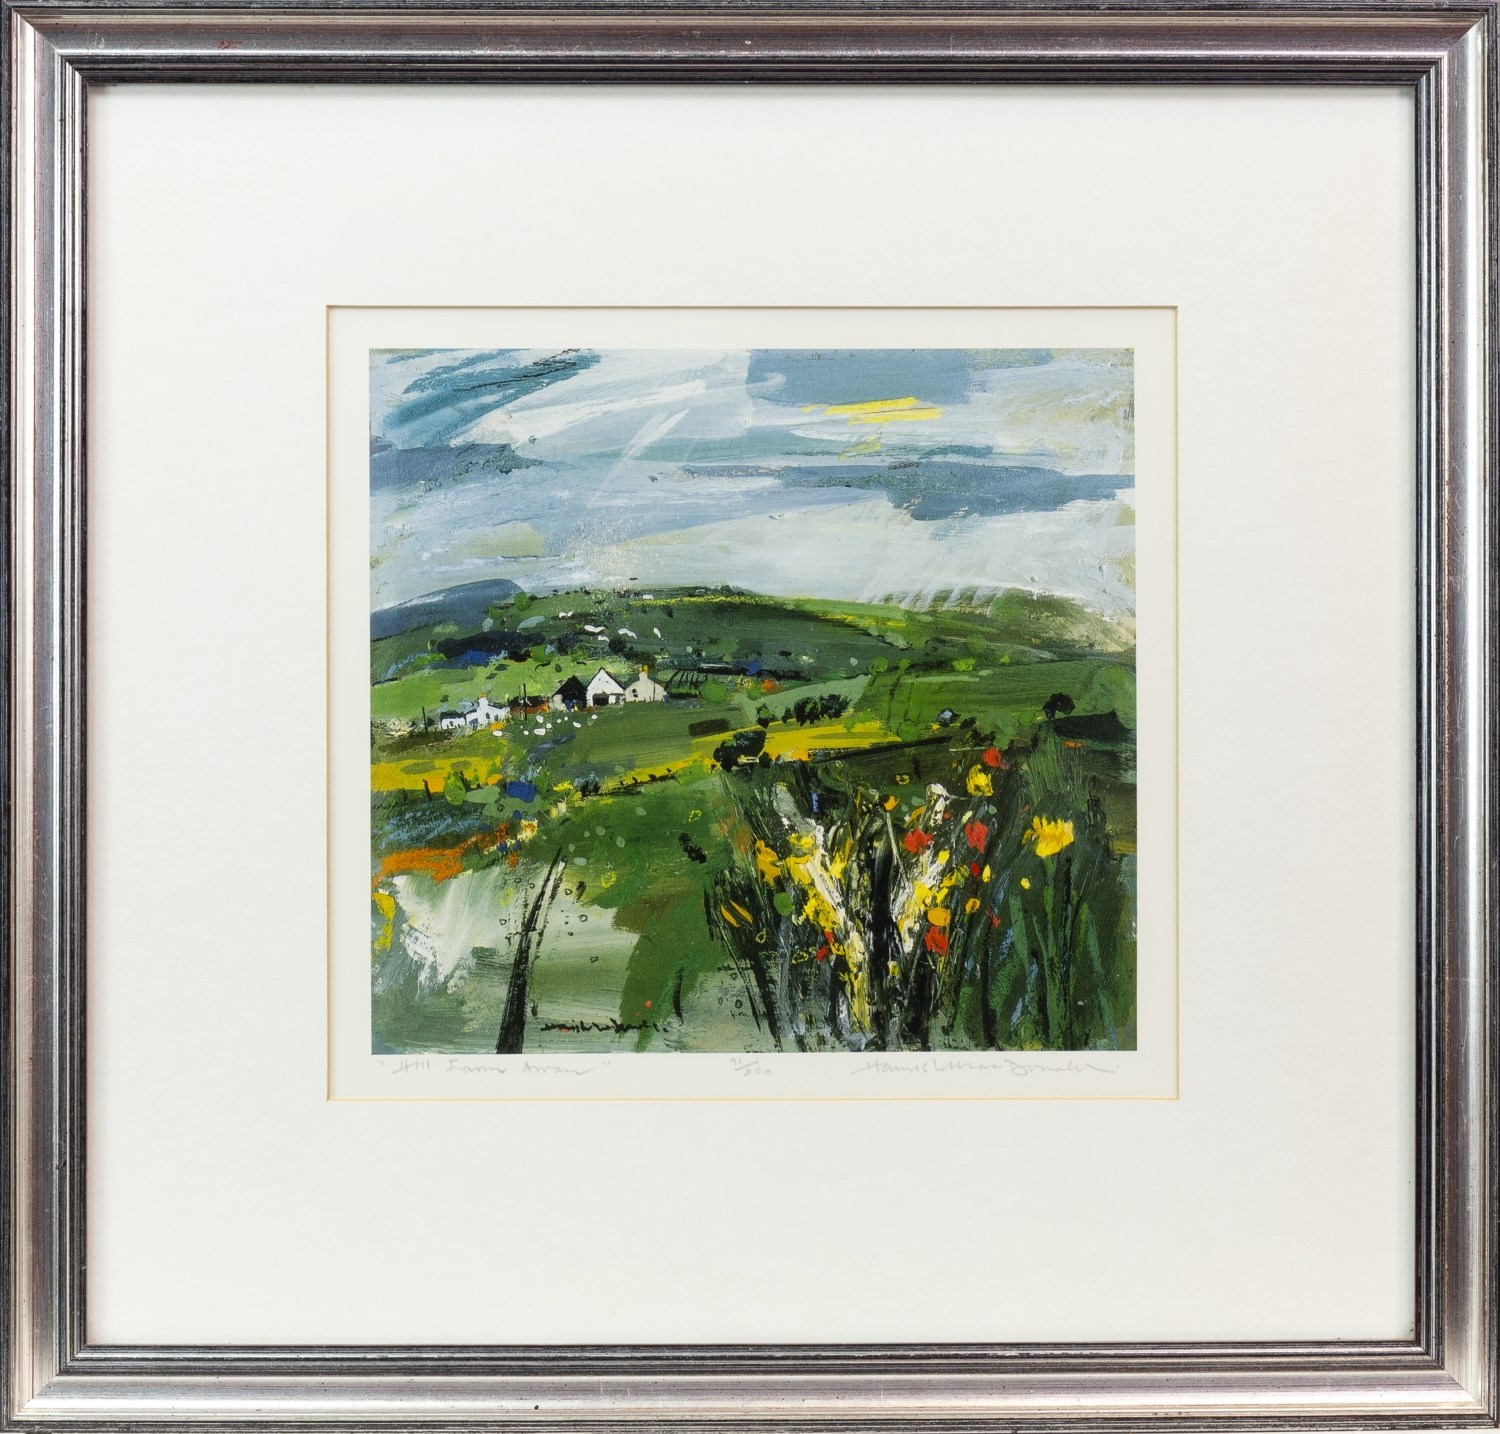 Lot 53 - HILL FARM, A LIMITED EDITION LITHOGRAPHIC PRINT BY HAMISH MACDONALD